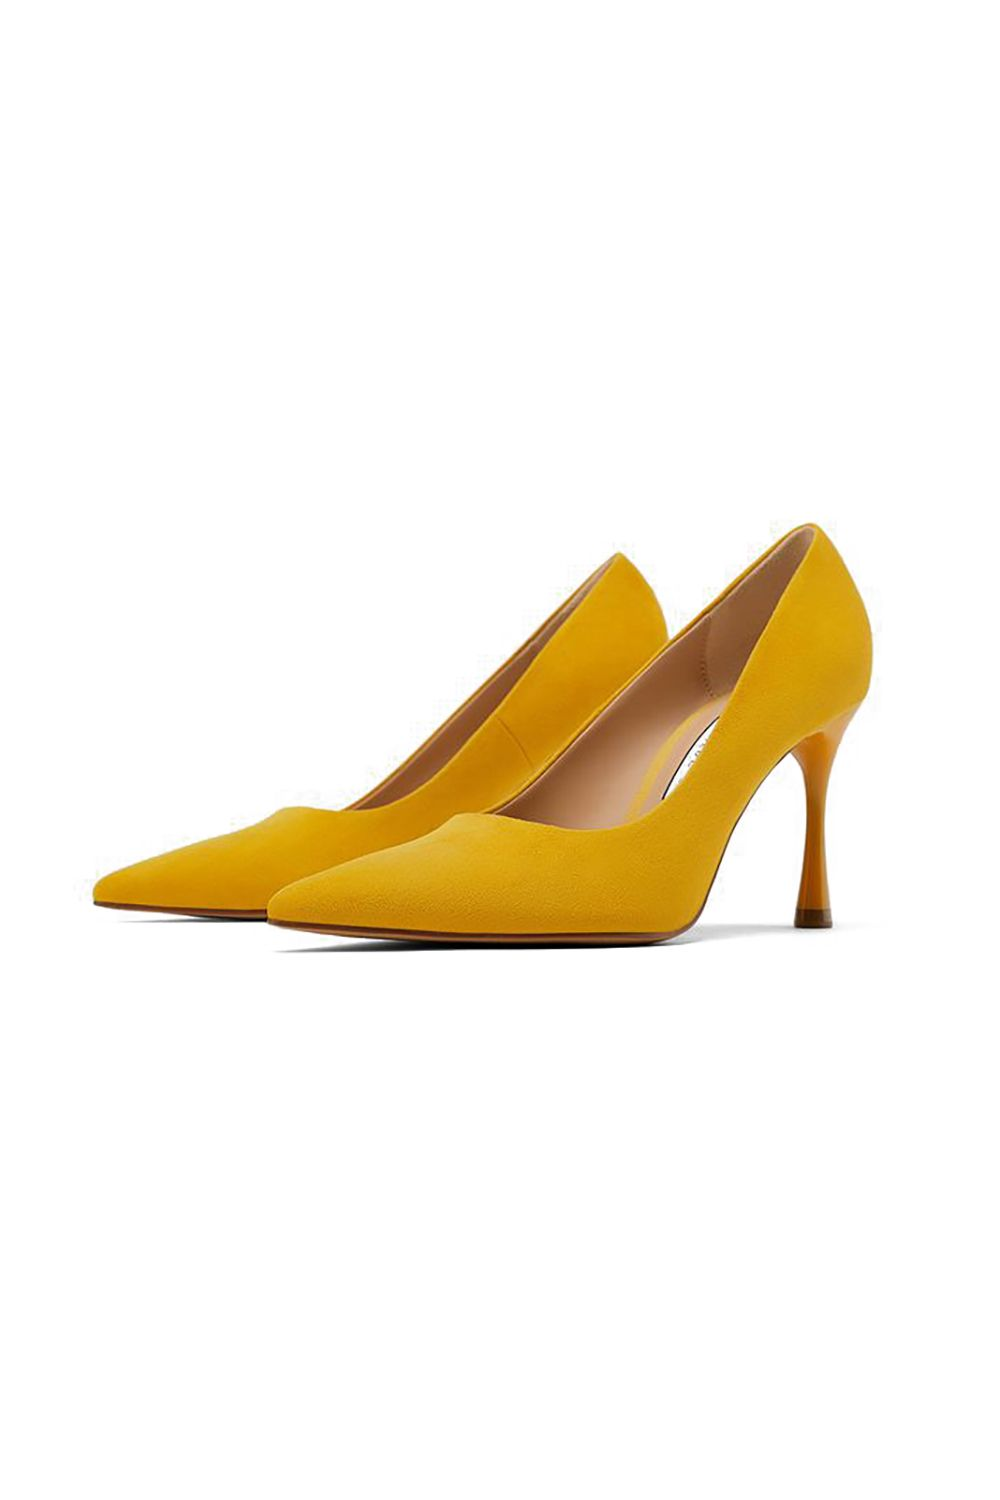 Power Pumps Zara, $40 SHOP IT Upgrade your basic stilettos with these rounded heels. The mustard-yellow shade adds a chic twist to your serious all-black wardrobe.